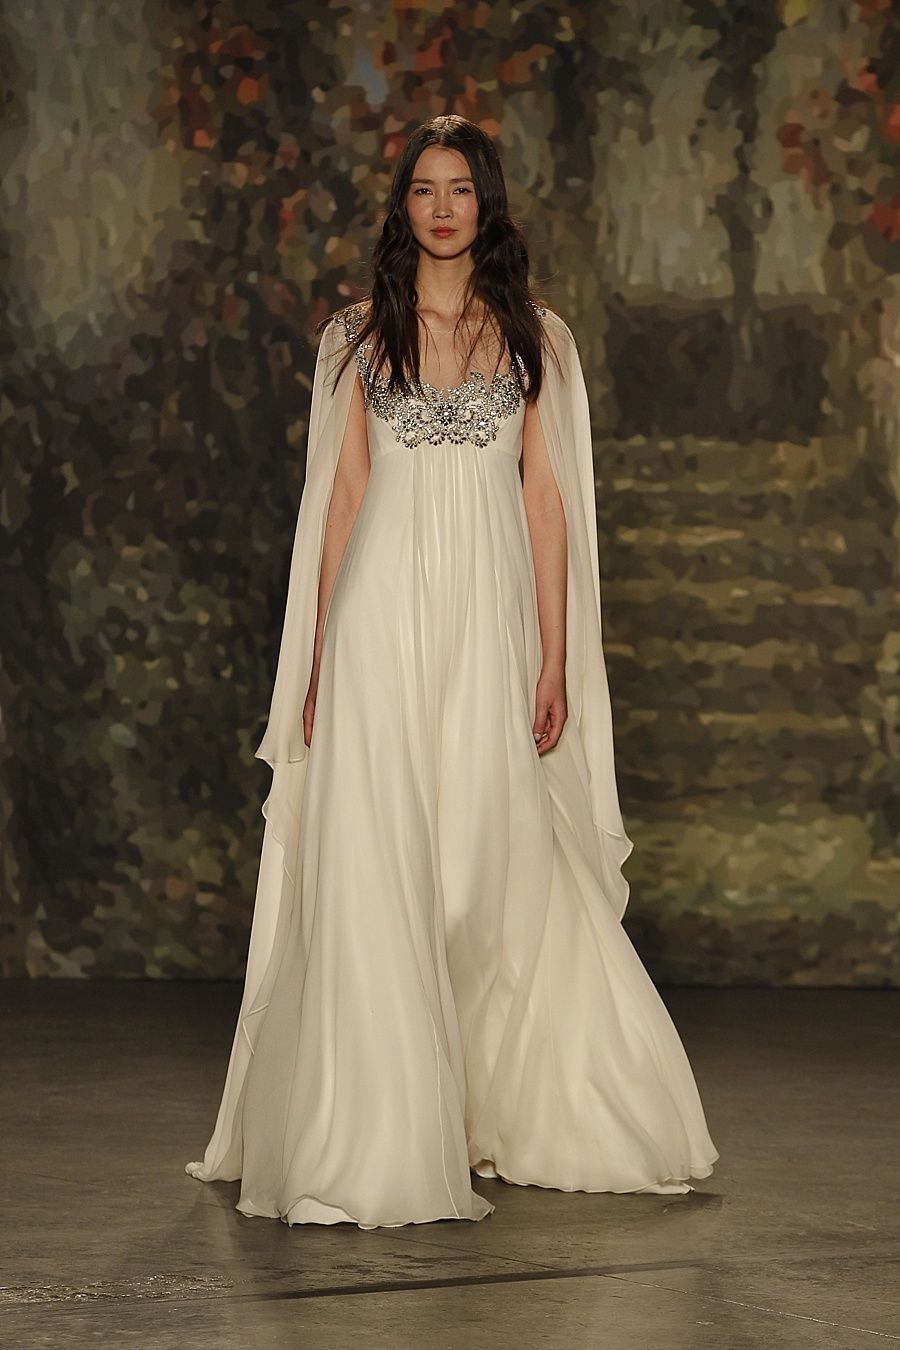 Jenny packham spring wedding dresses glam gowns